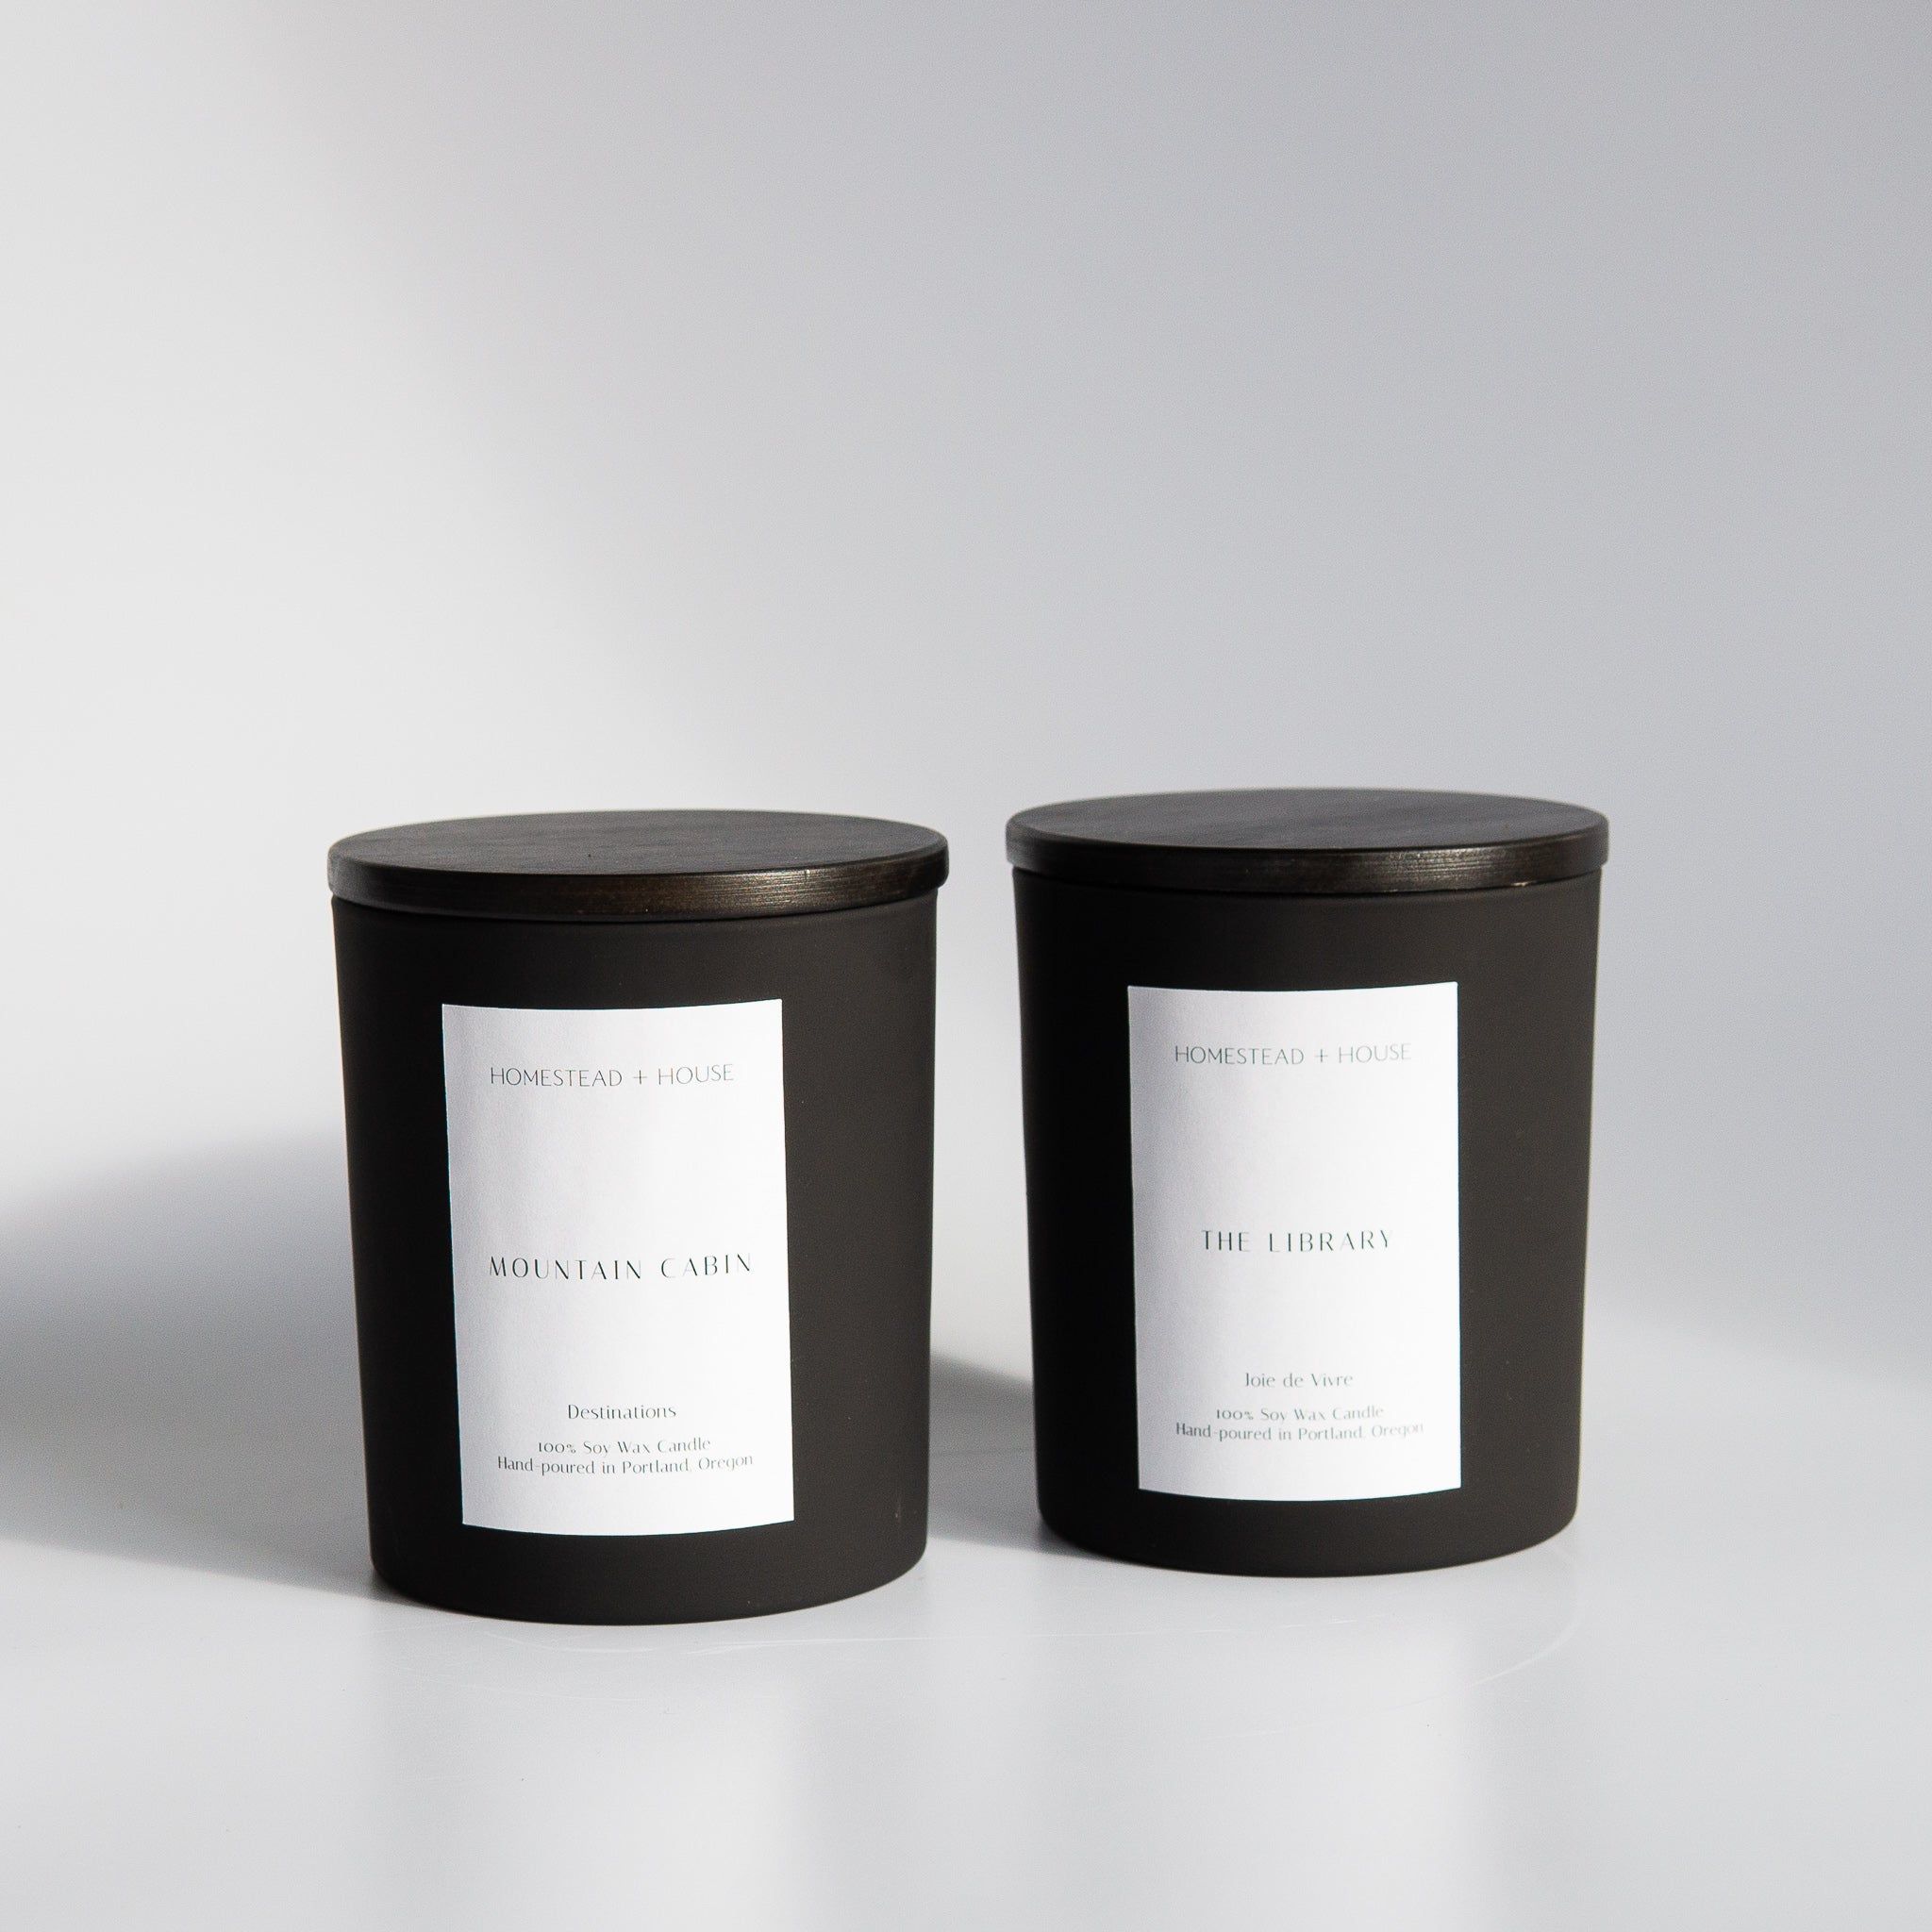 Homestead + House: 13.5 oz Candle